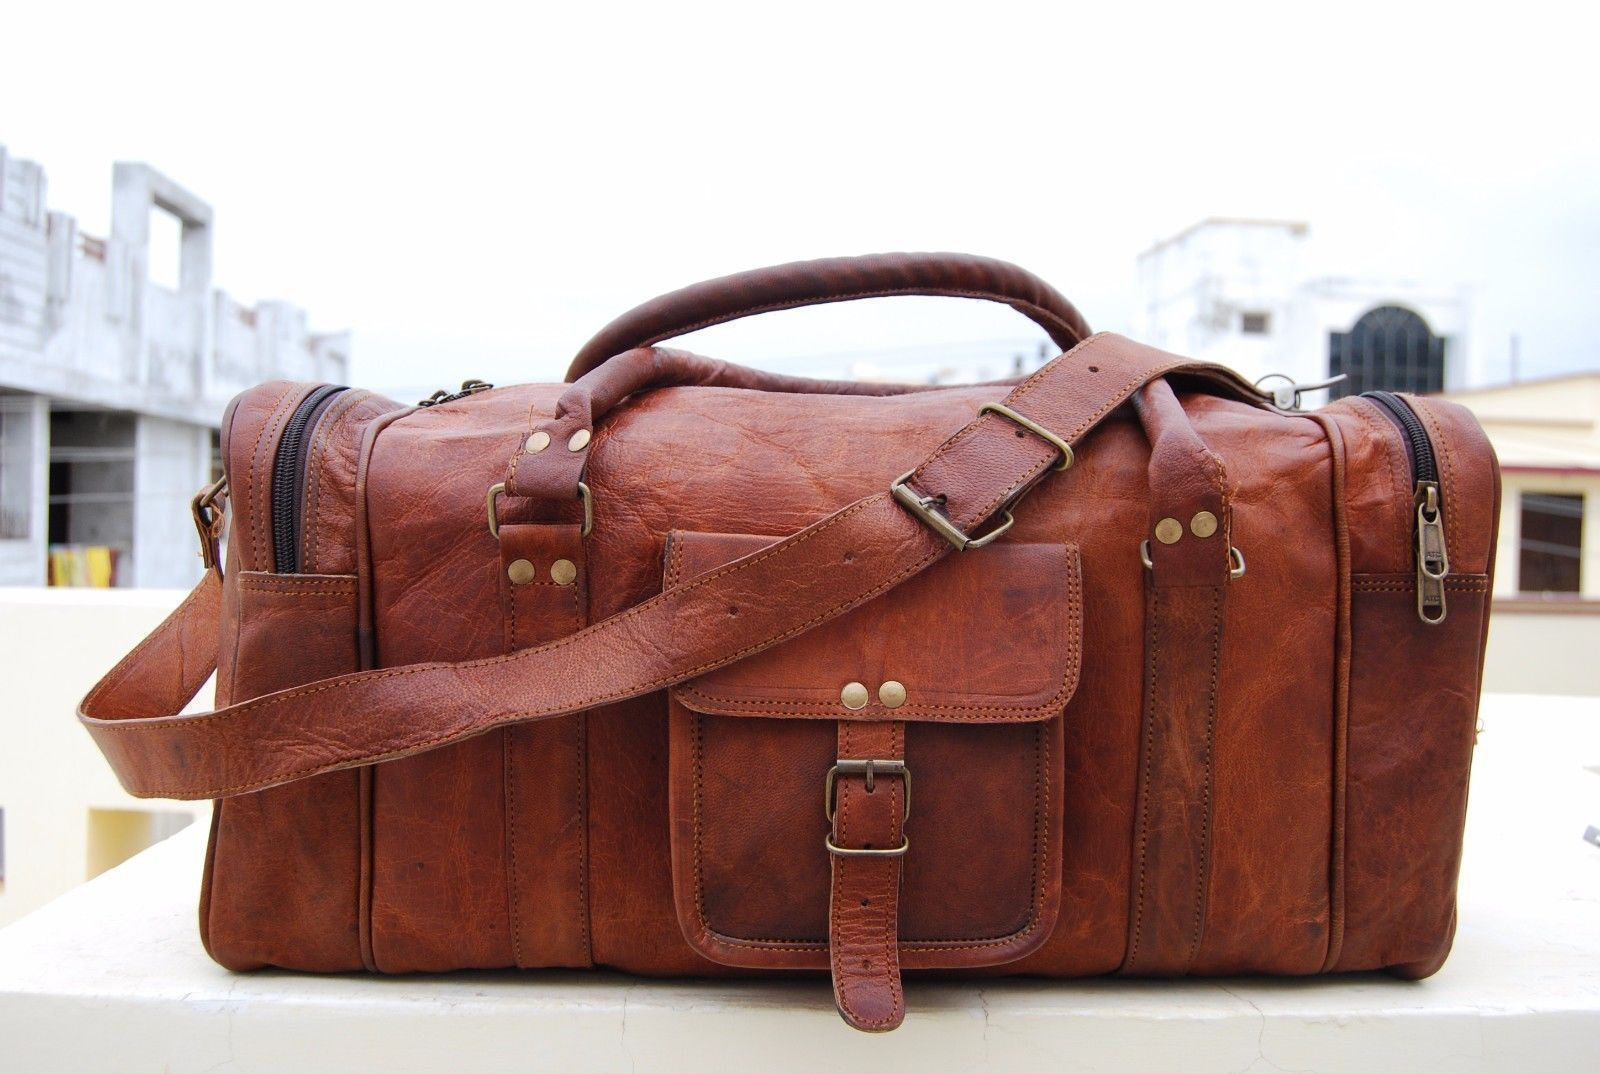 Primary image for HANDMADE REAL LEATHER DUFFEL BAG WEEKEND GYM OVERNIGHT CANVAS TRAVEL BAGS MENS